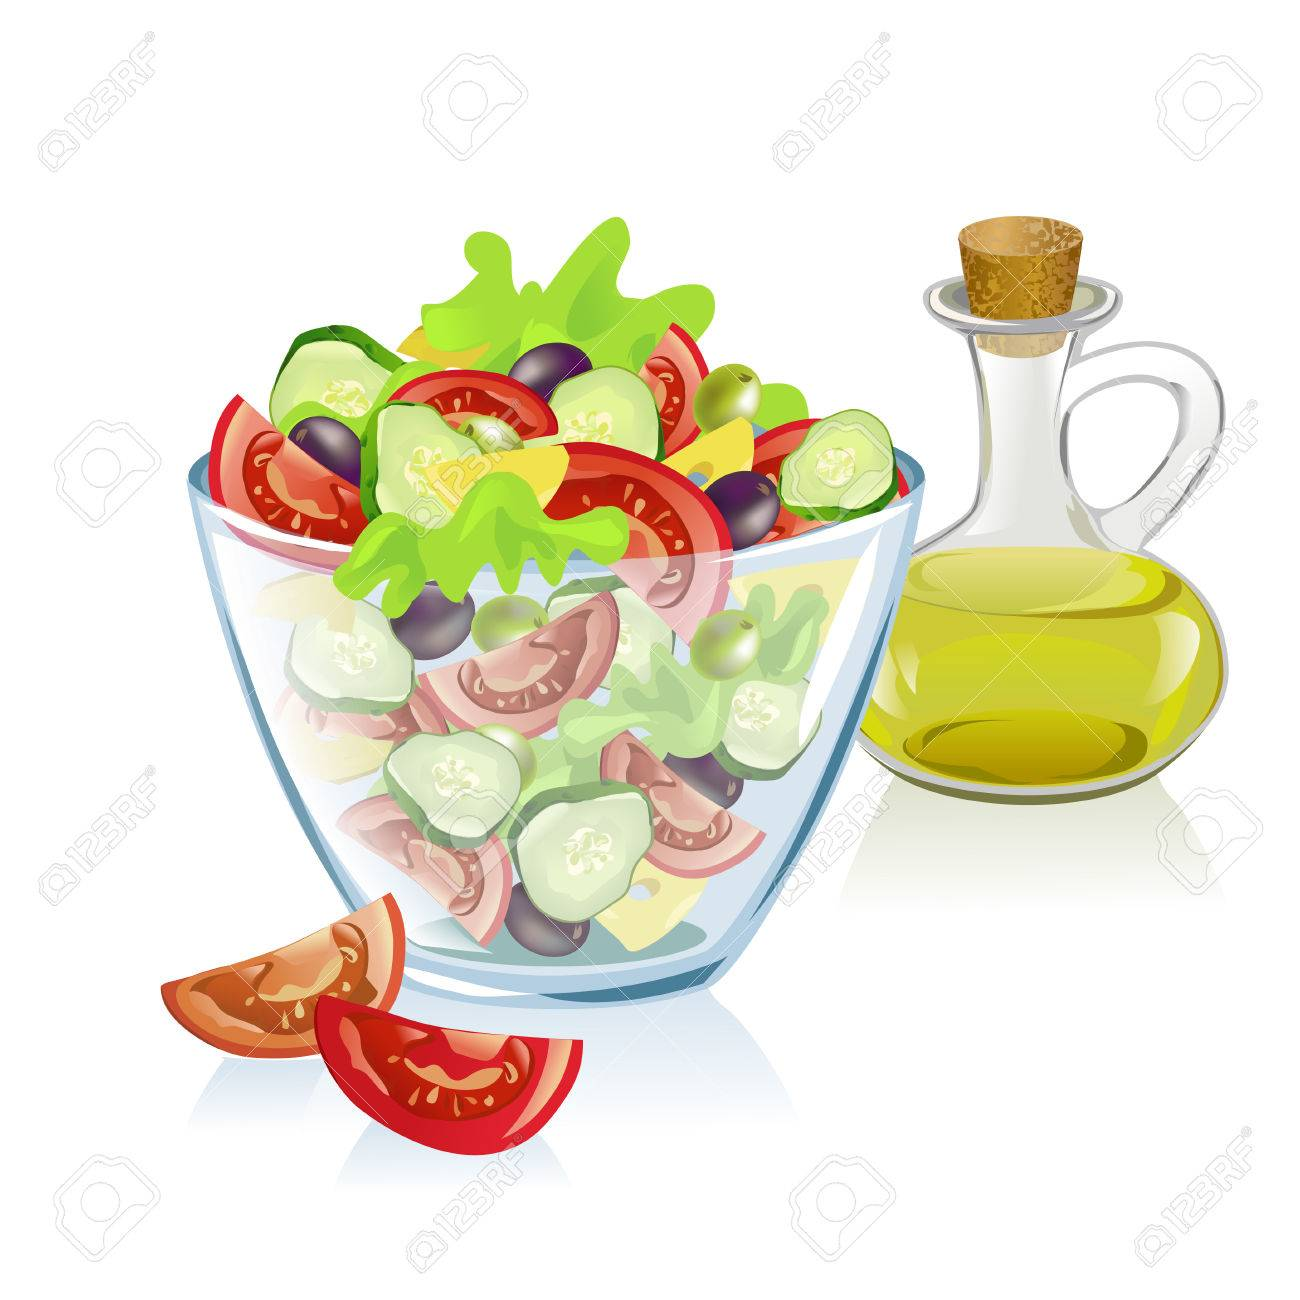 healthy nutrition. vector illustration Standard-Bild - 26233804